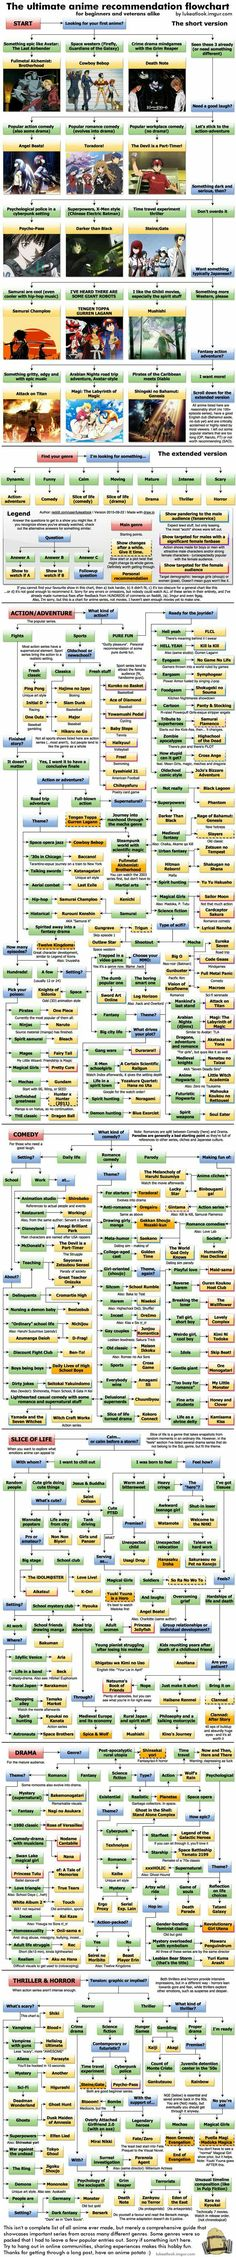 Anime flowchart for beginners (and not only